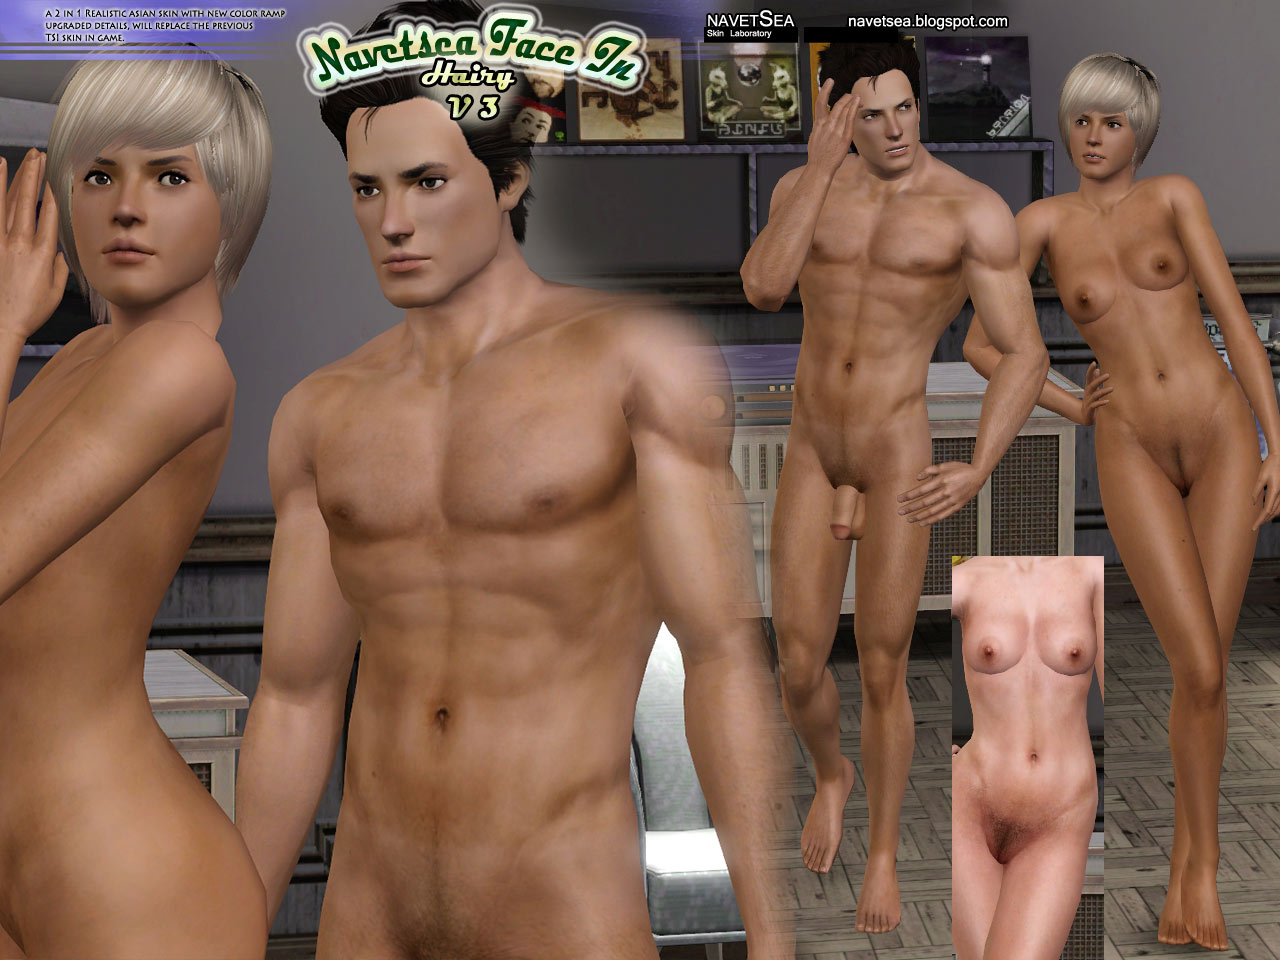 Nude skins the sims3 showtime porncraft scenes